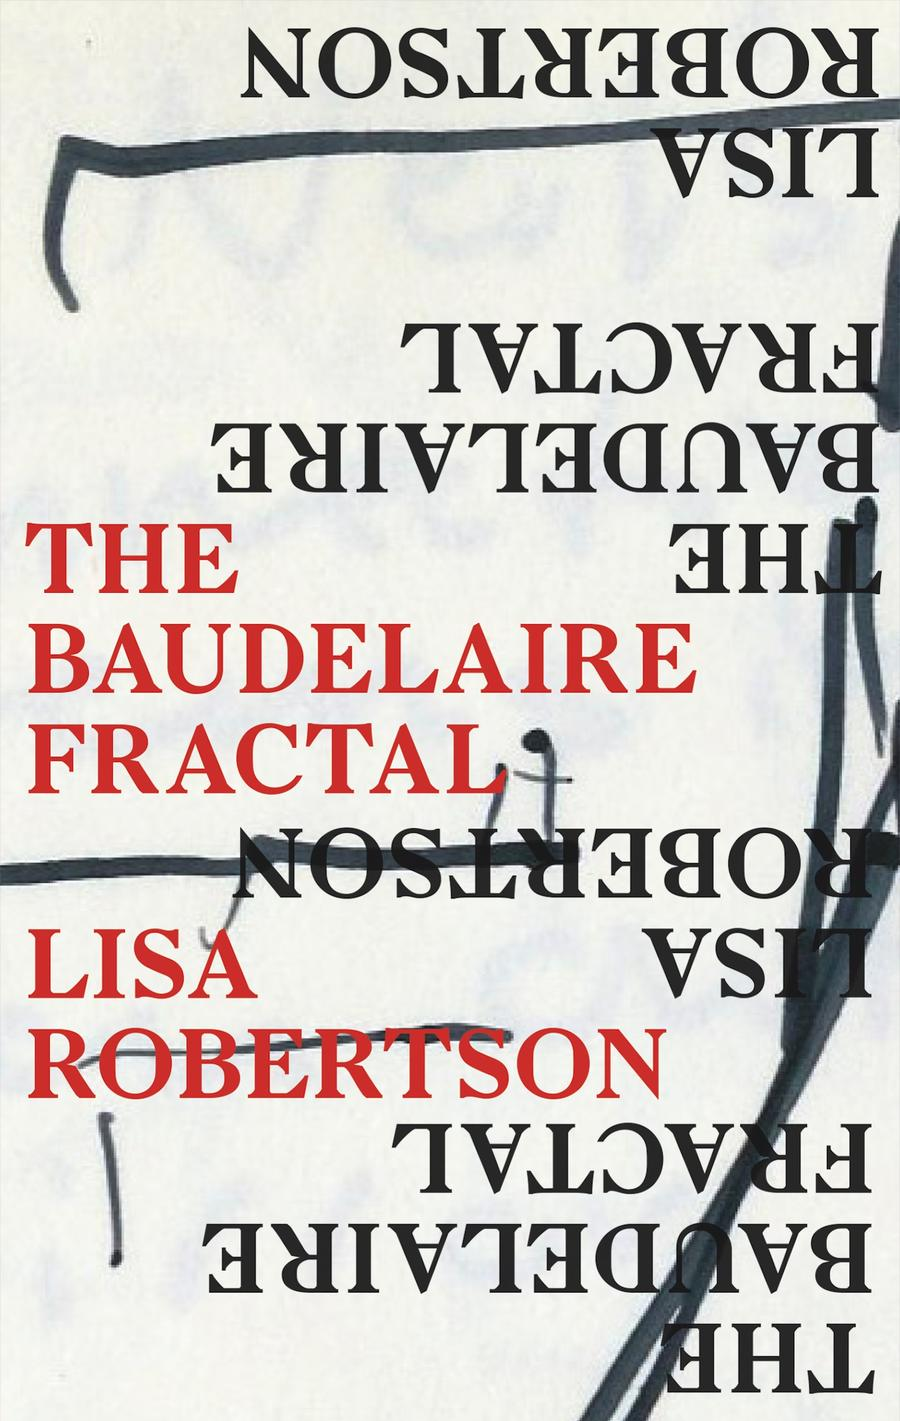 The cover of The Baudelaire Fractal